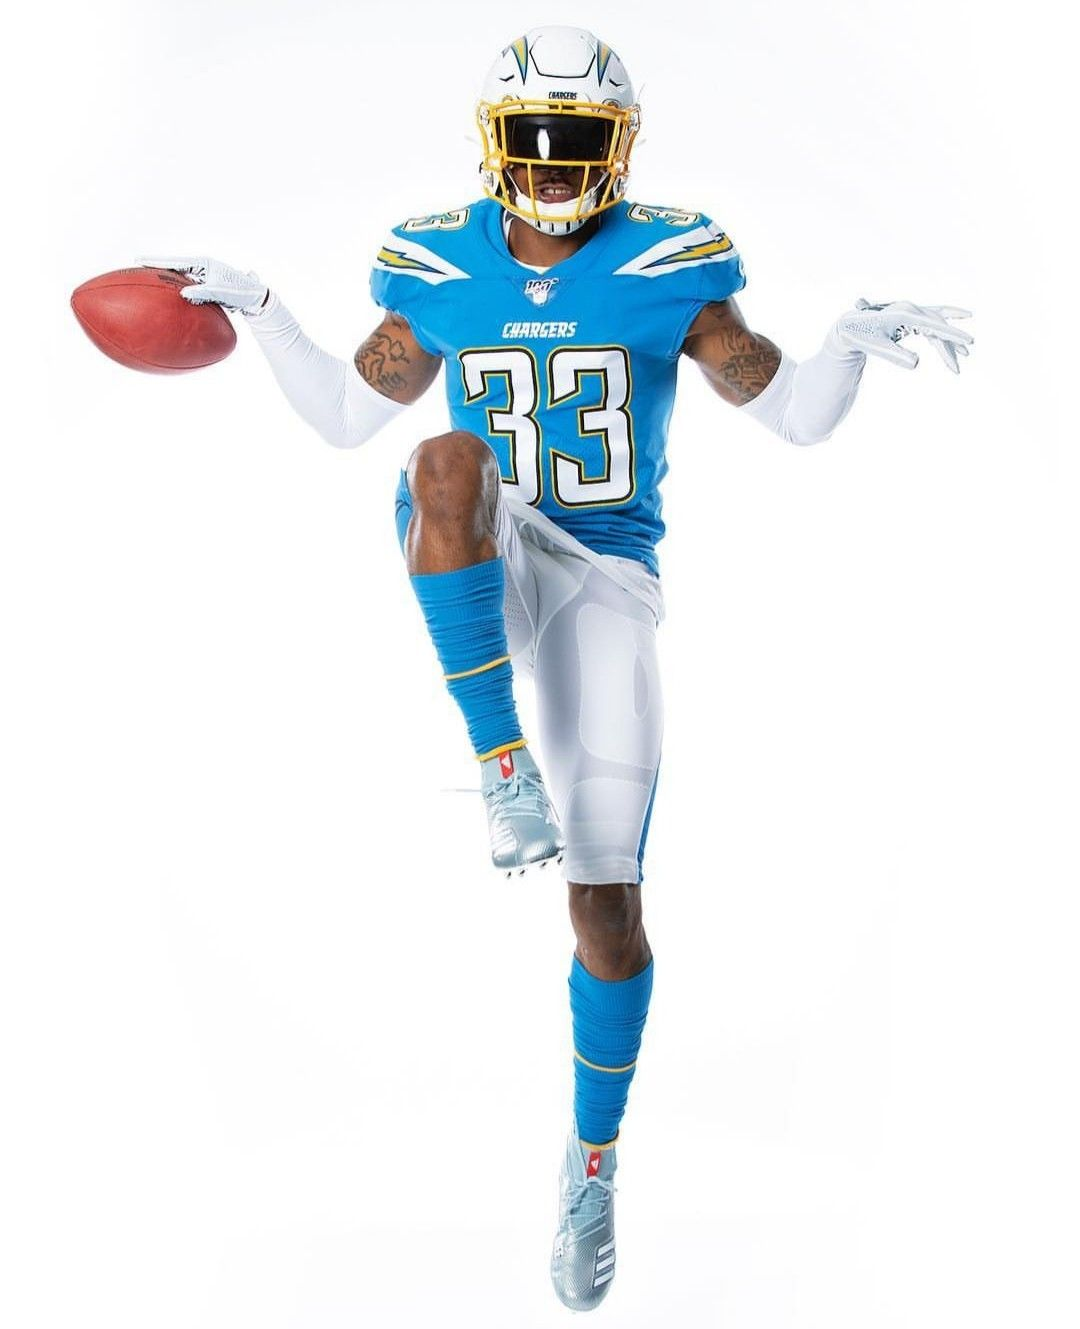 Los Angeles Chargers New Home Uniforms Los Angeles Chargers Football Uniforms Chargers